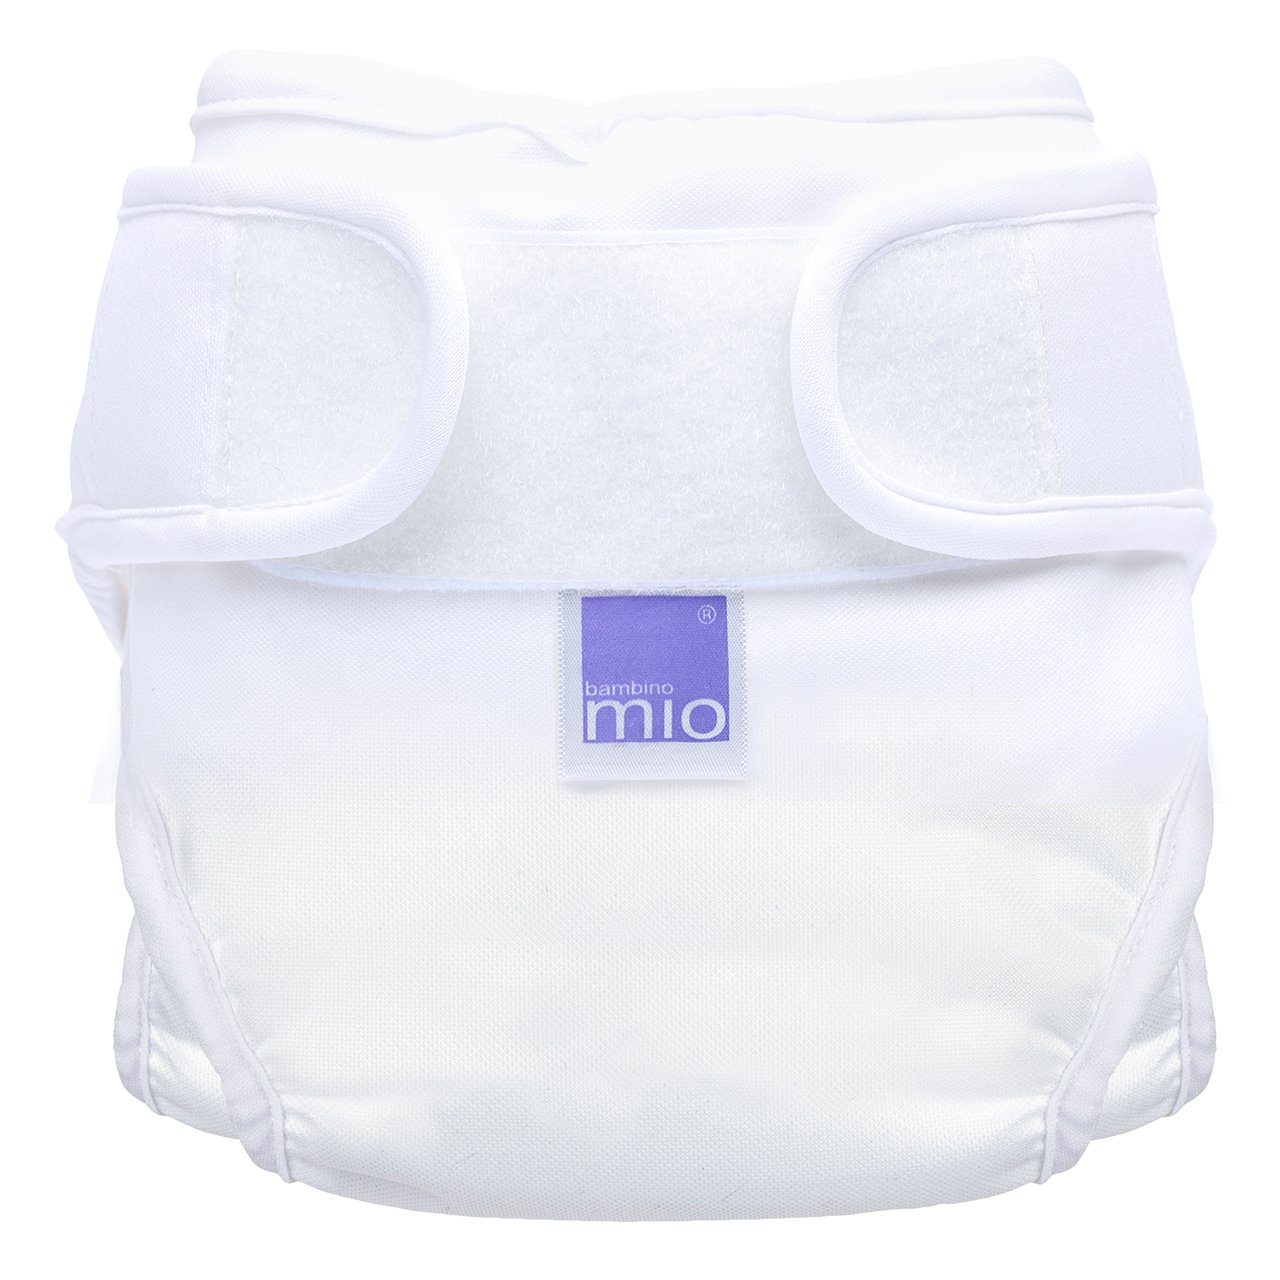 Bambino Mio, Miosoft Nappy Cover, White, Size 2 (2pack) 2MS2A